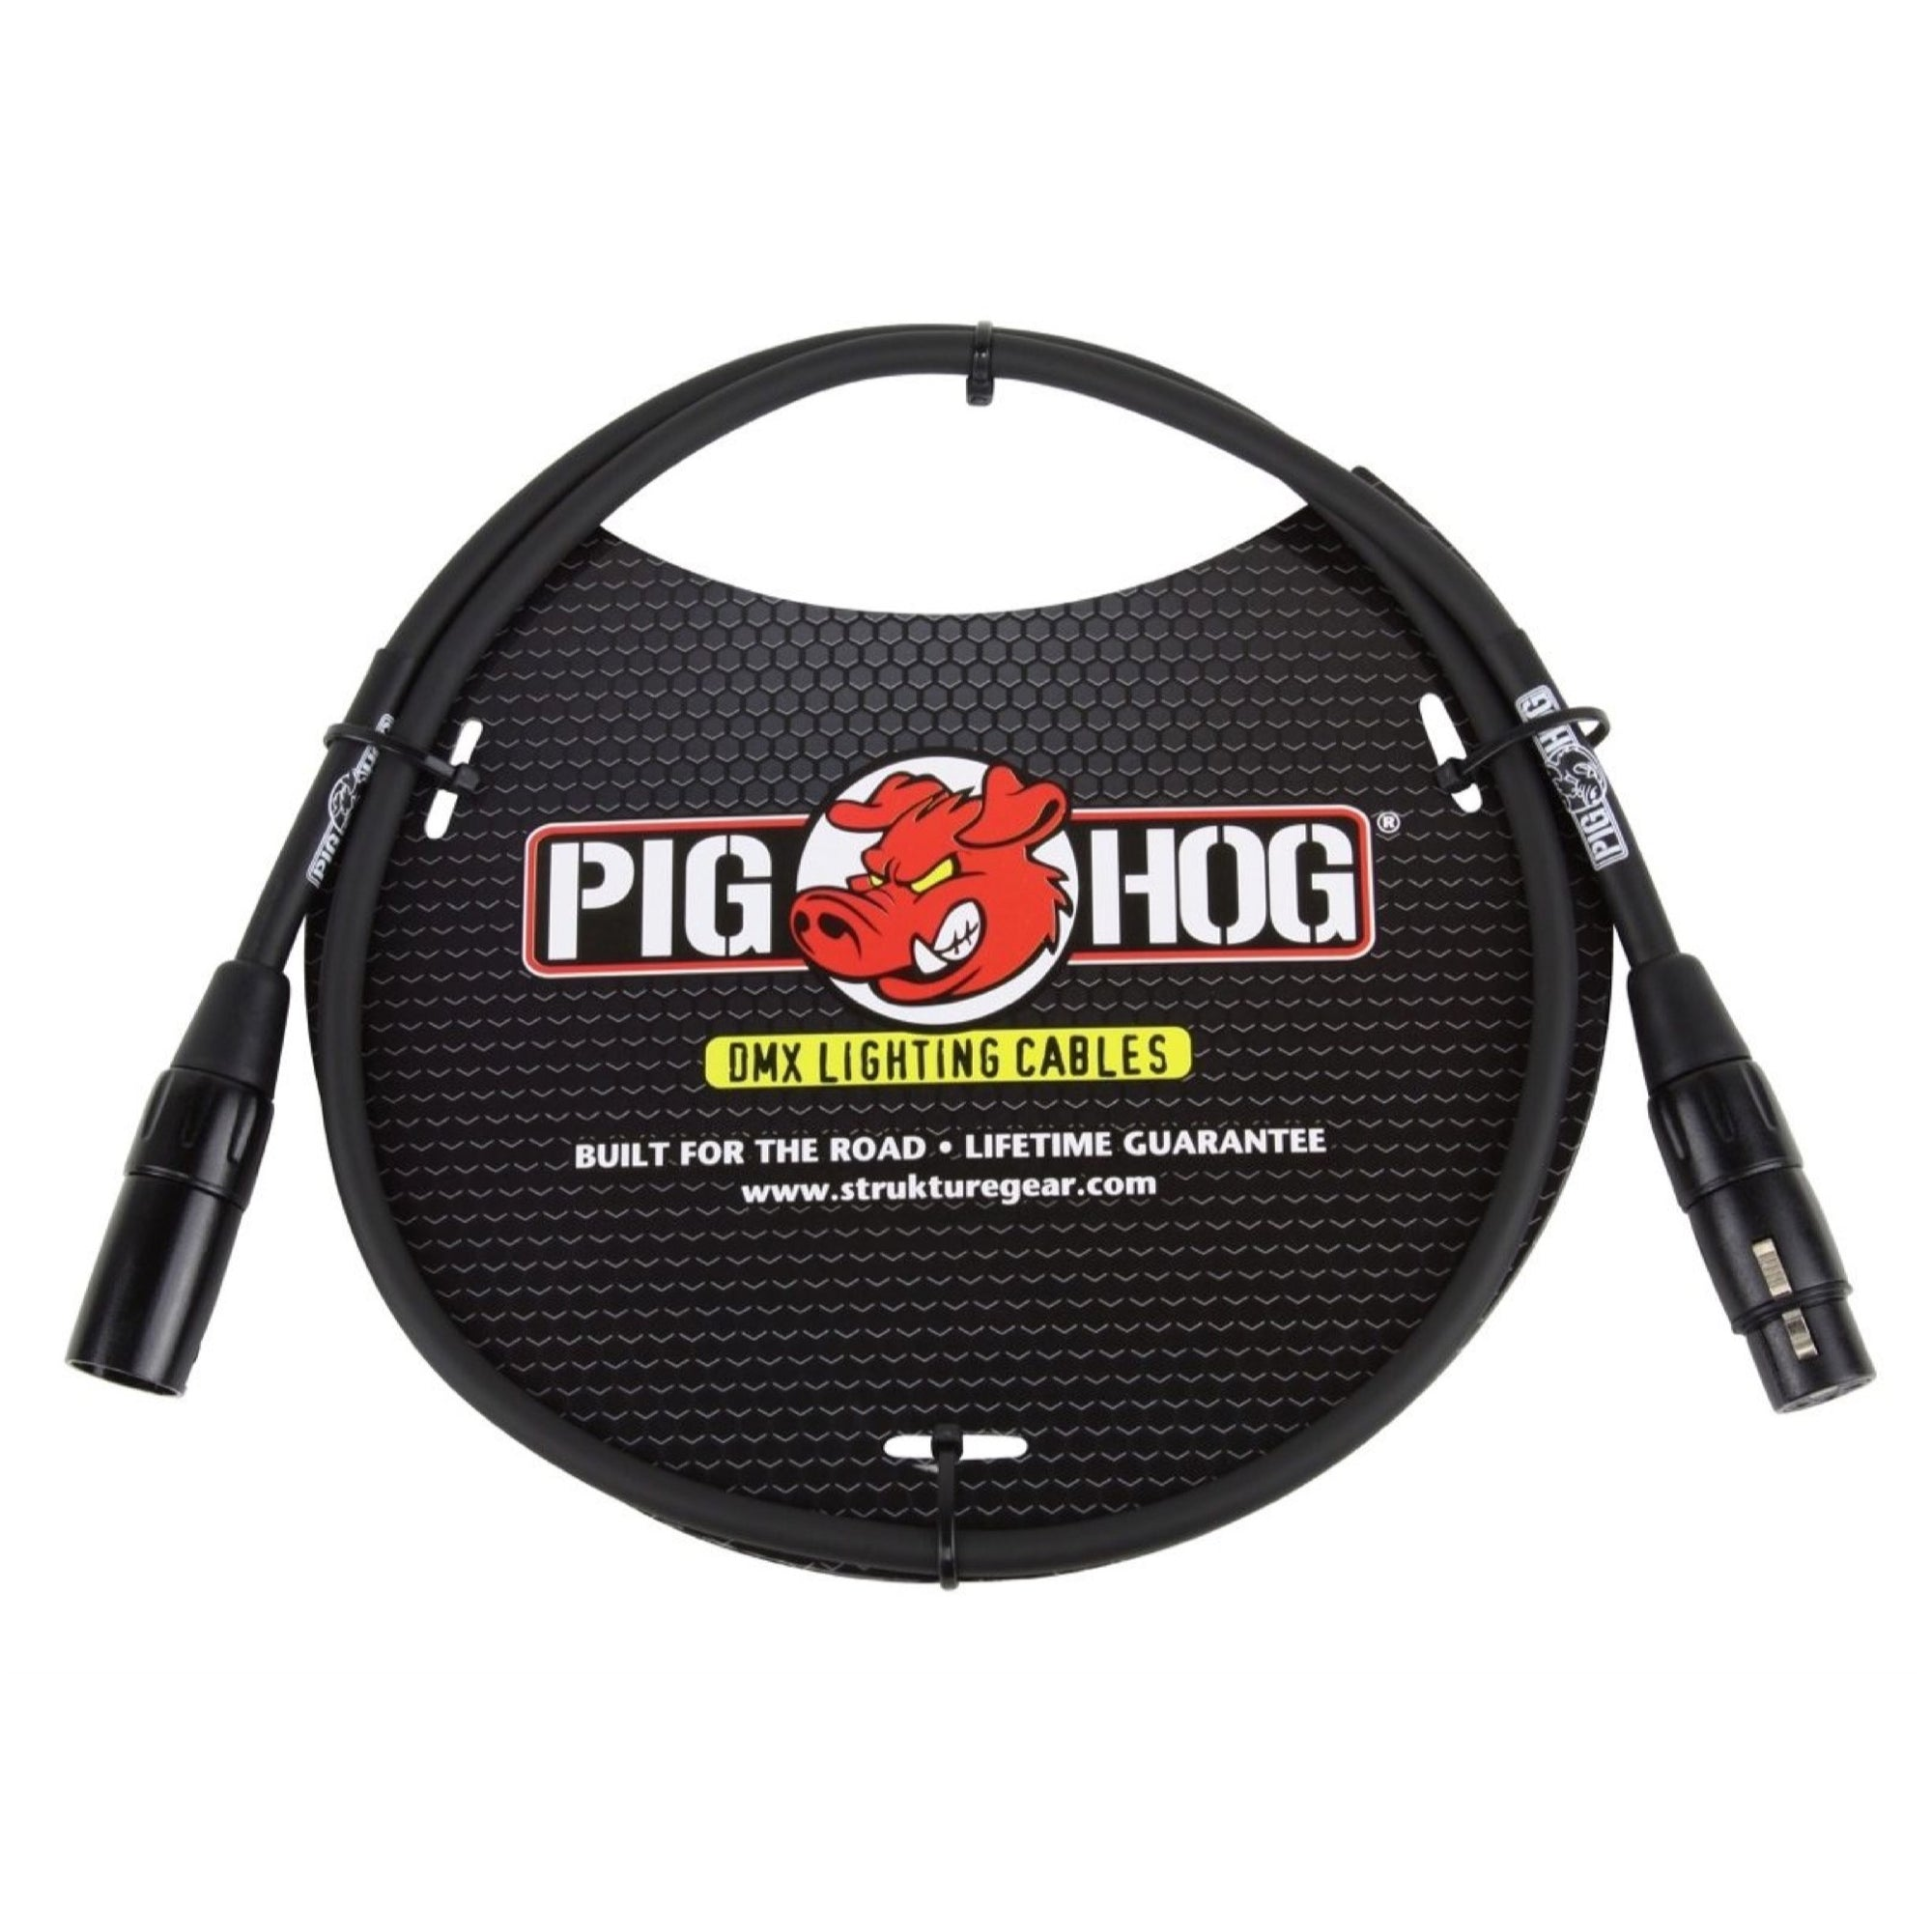 Pig Hog 3-Pin DMX Lighting Cable, 10 Foot